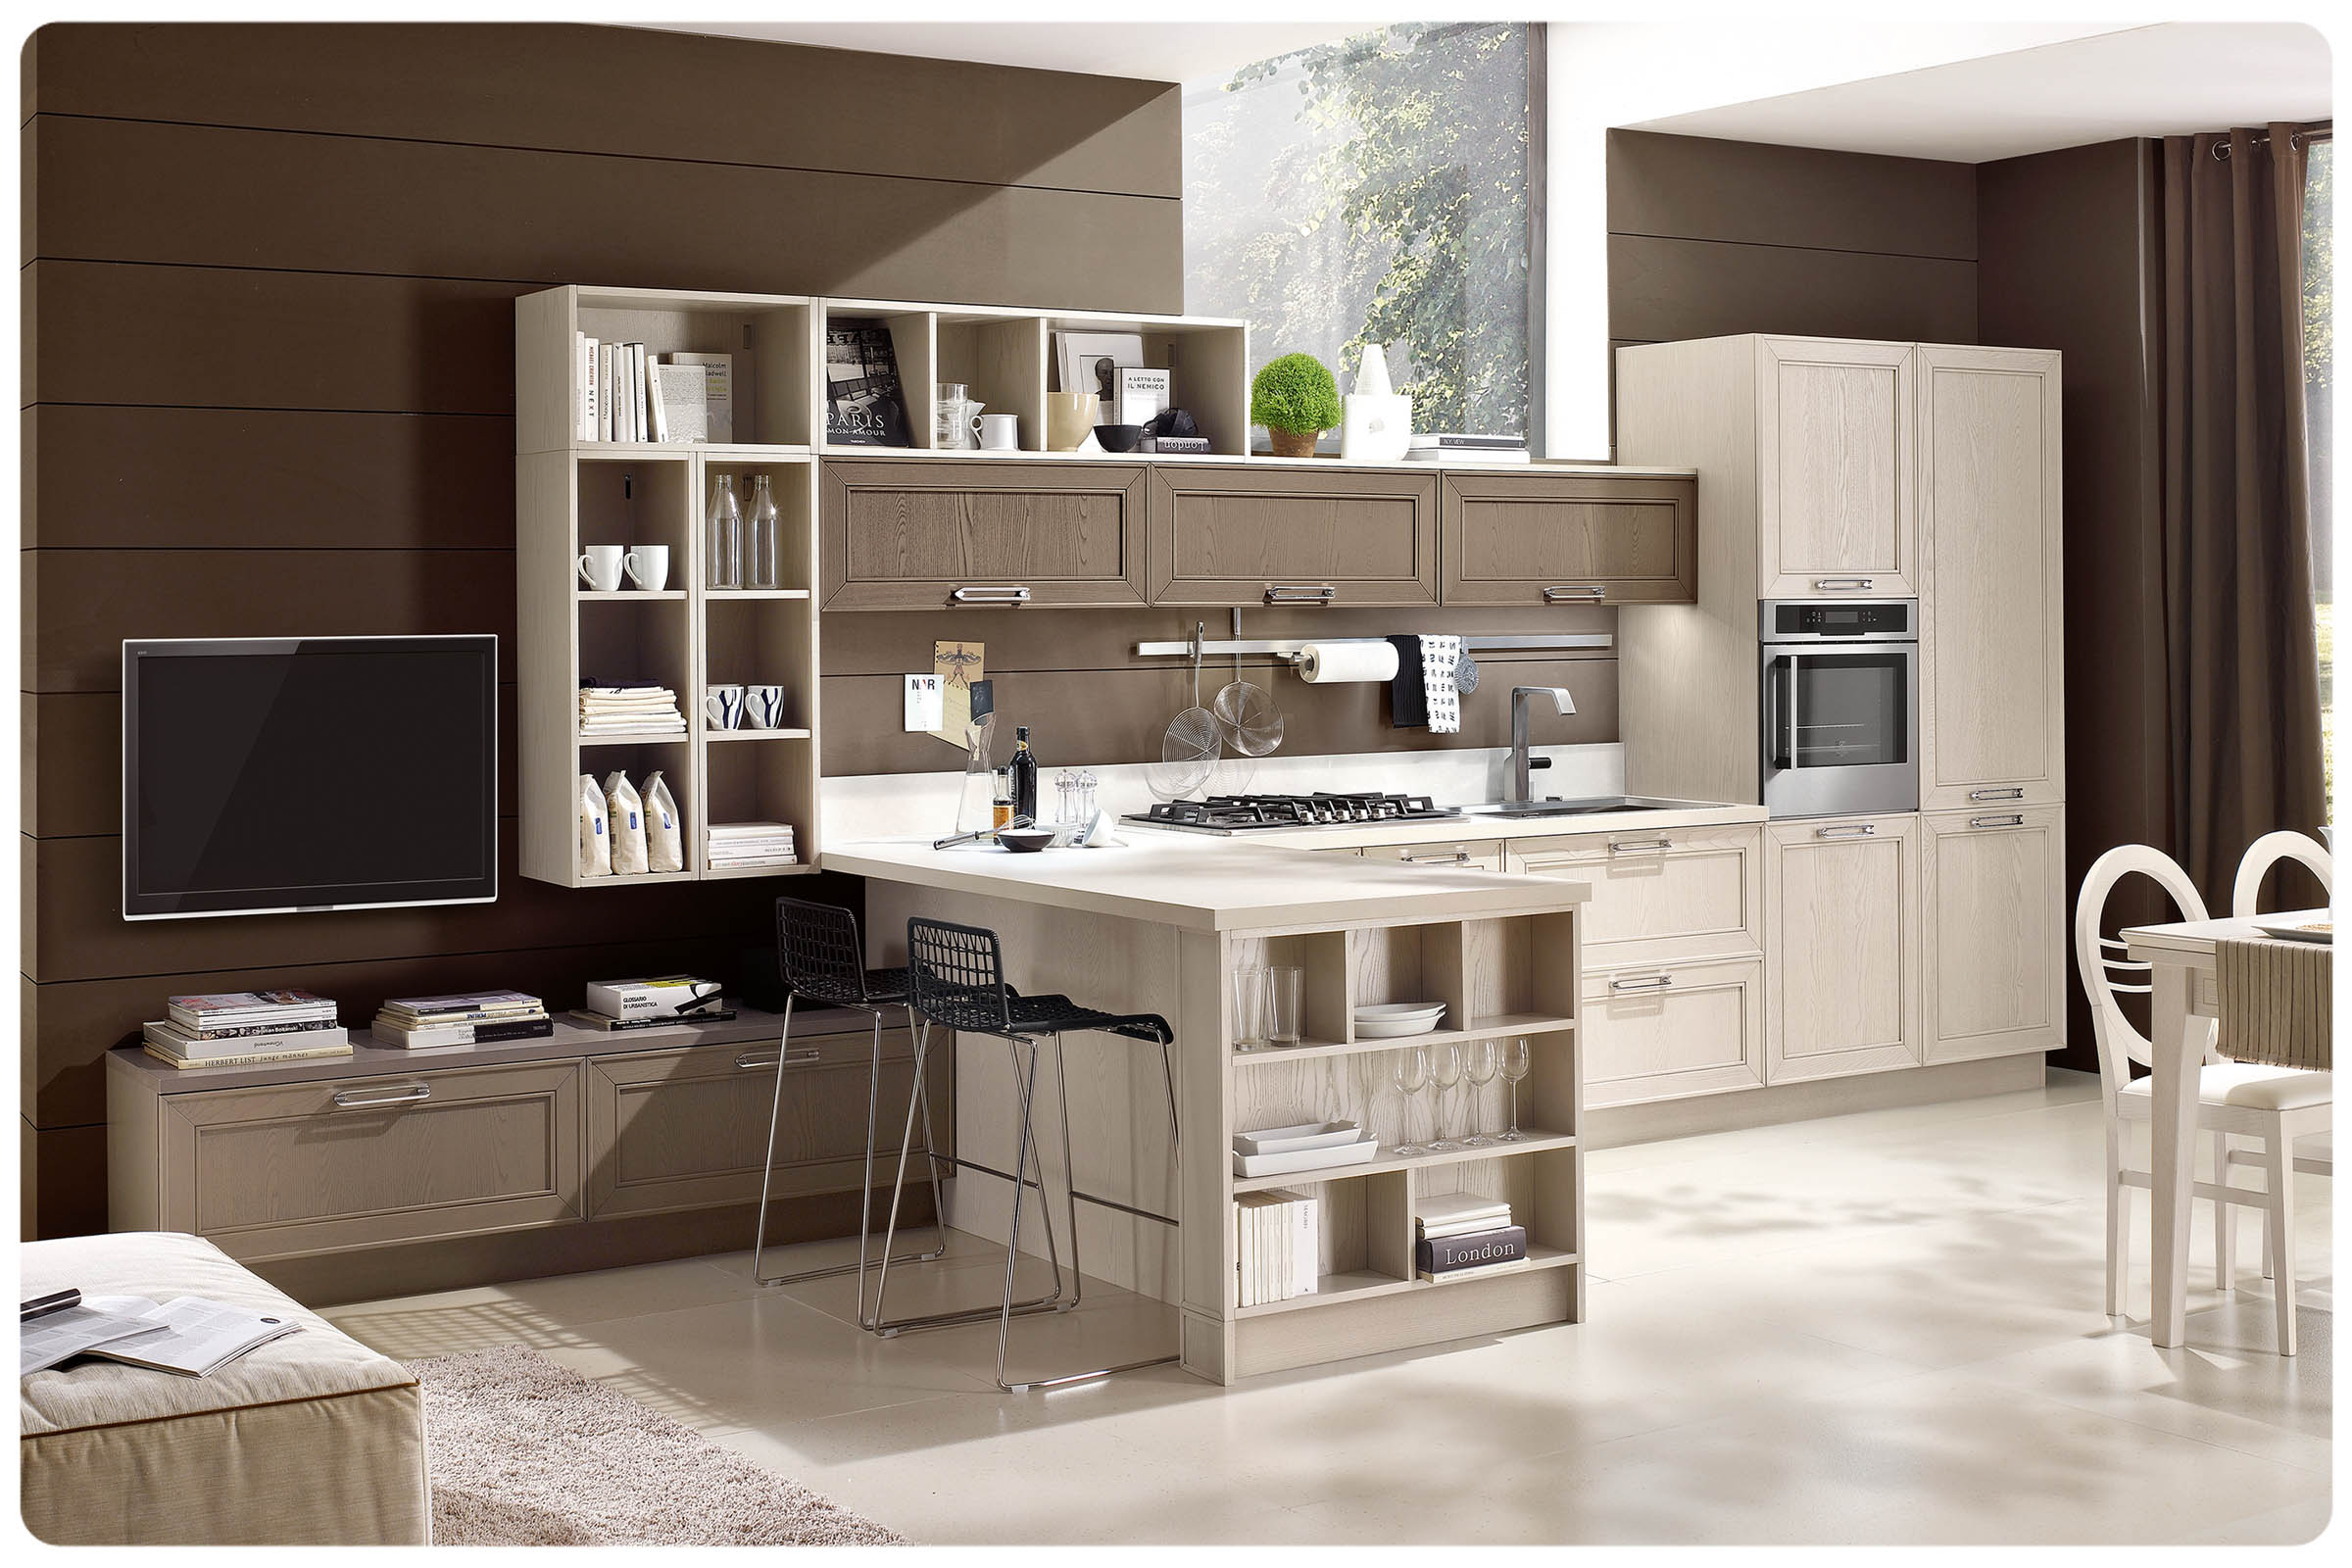 Cucine milano outlet interesting mobilturi functional - Cucine cesano maderno ...